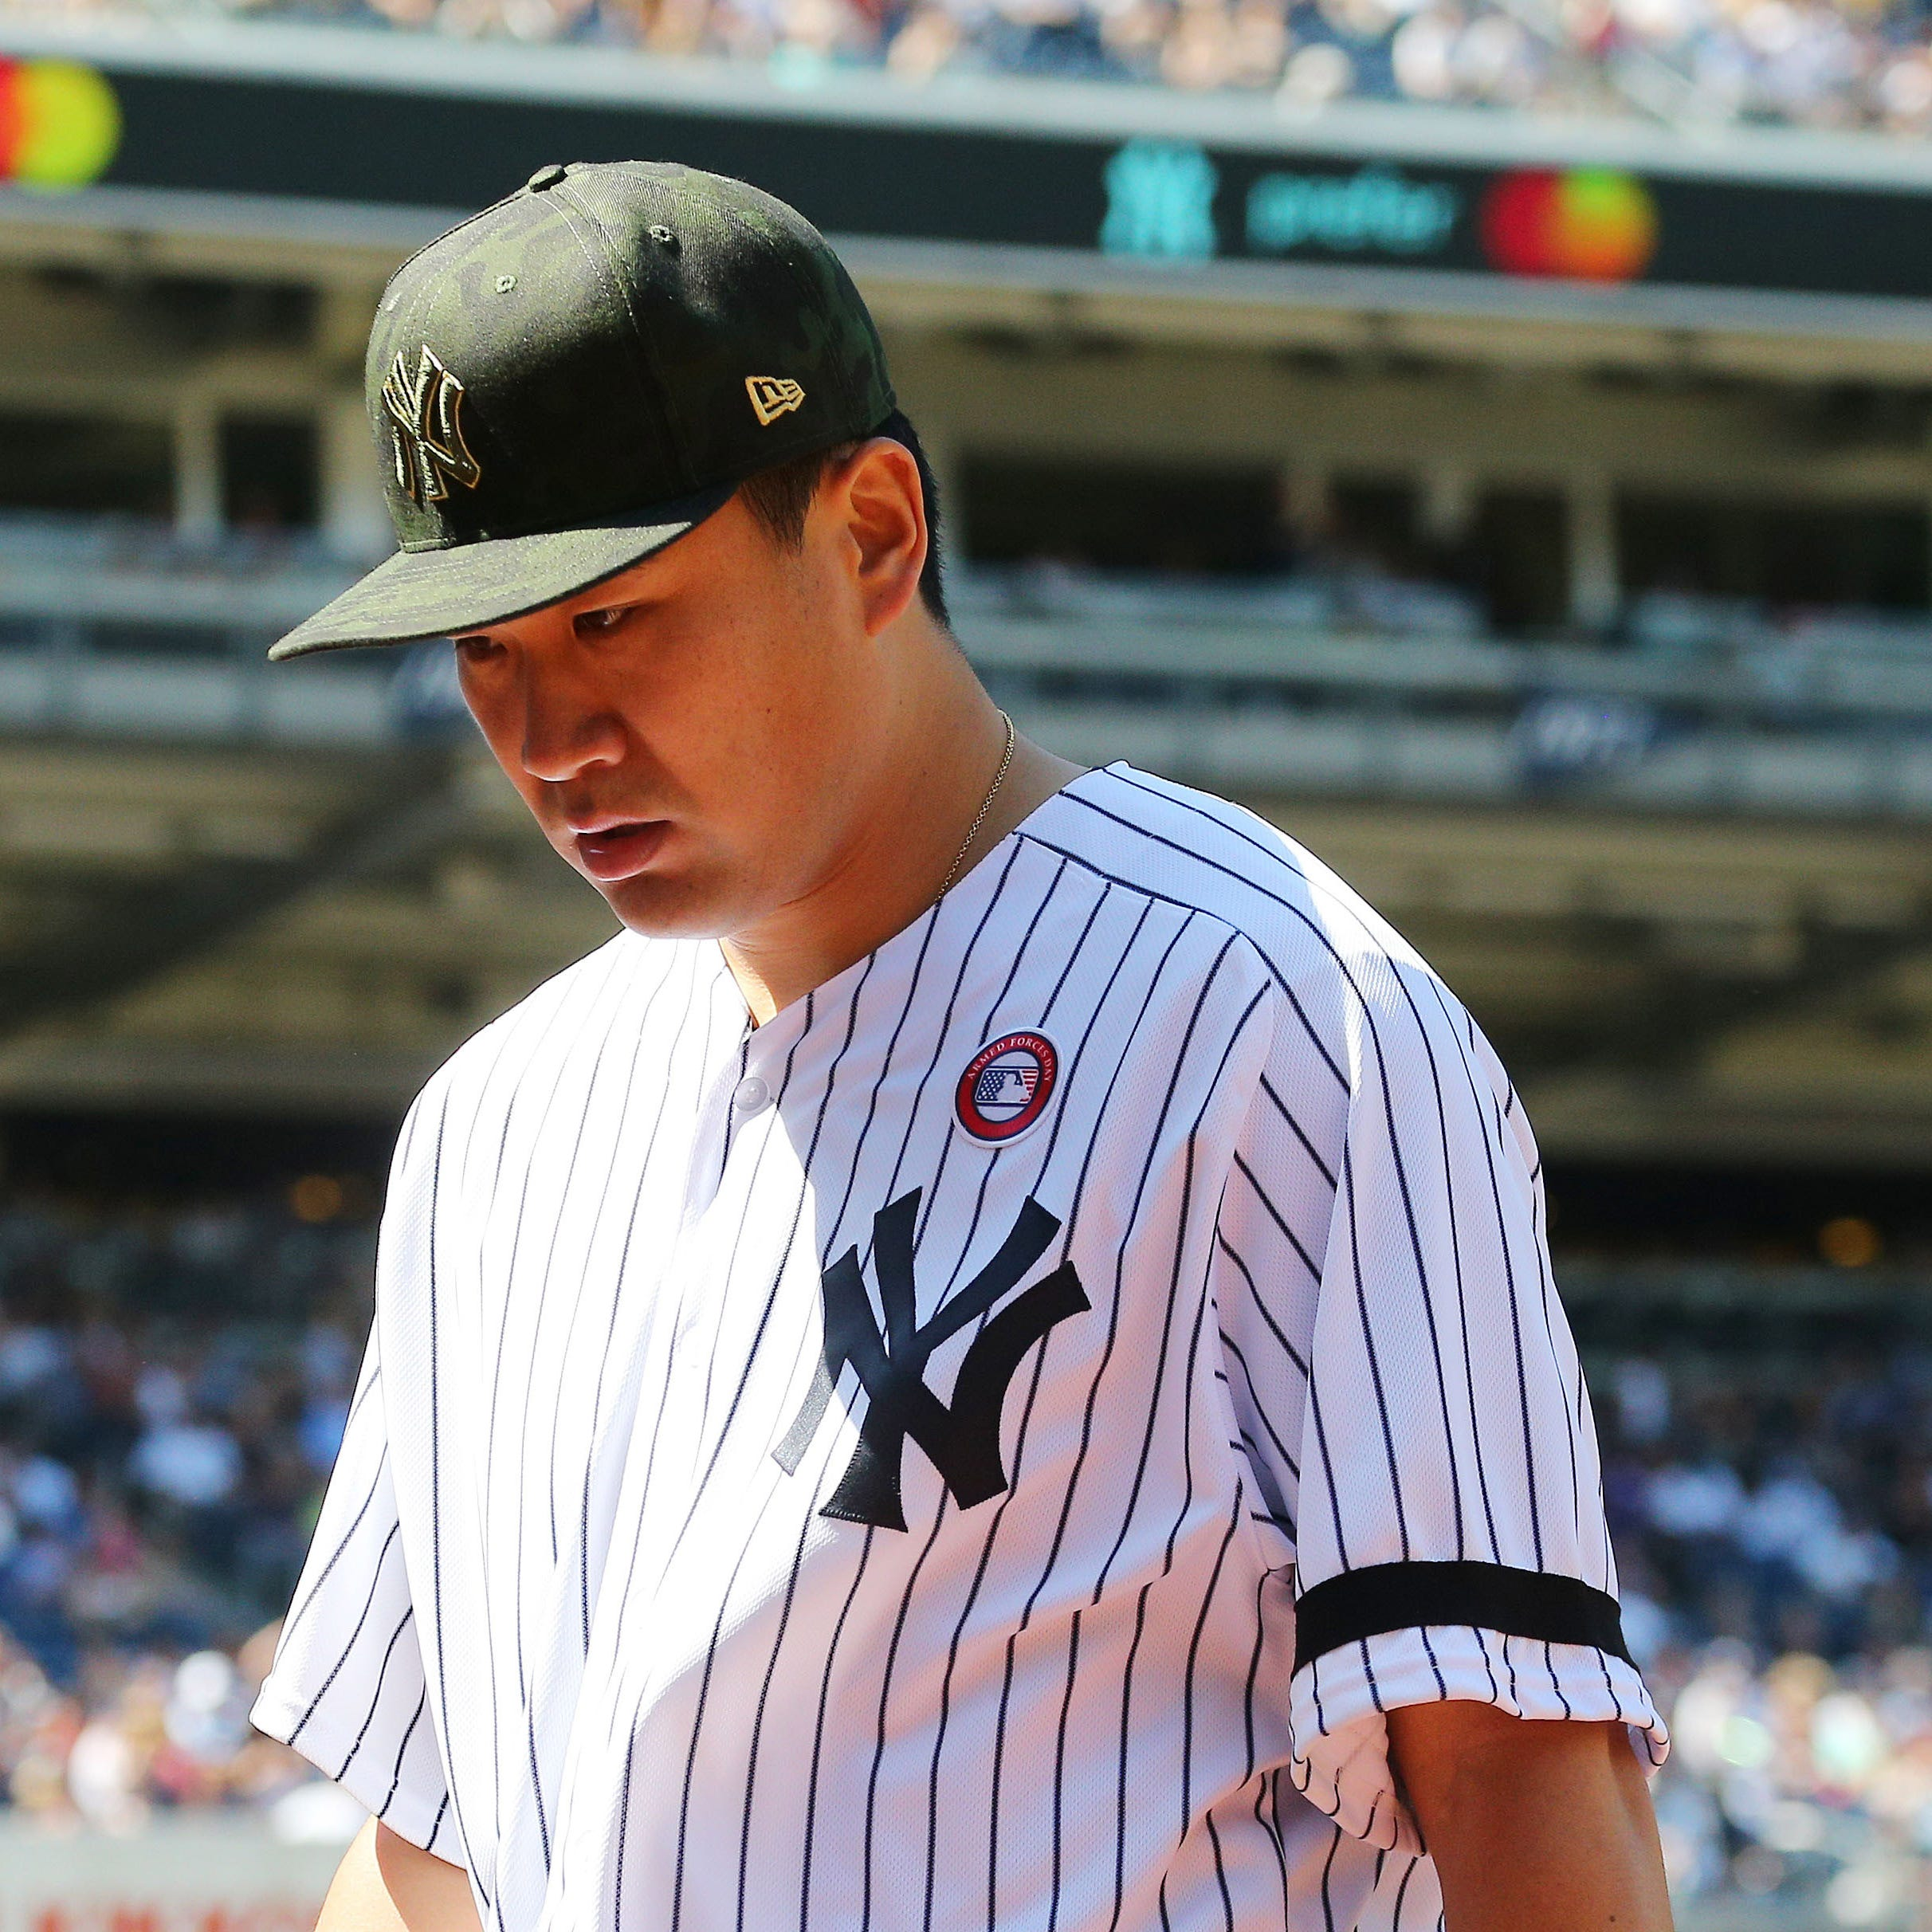 Updates on Yankees pitchers Masahiro Tanaka, James Paxton, Dellin Betances